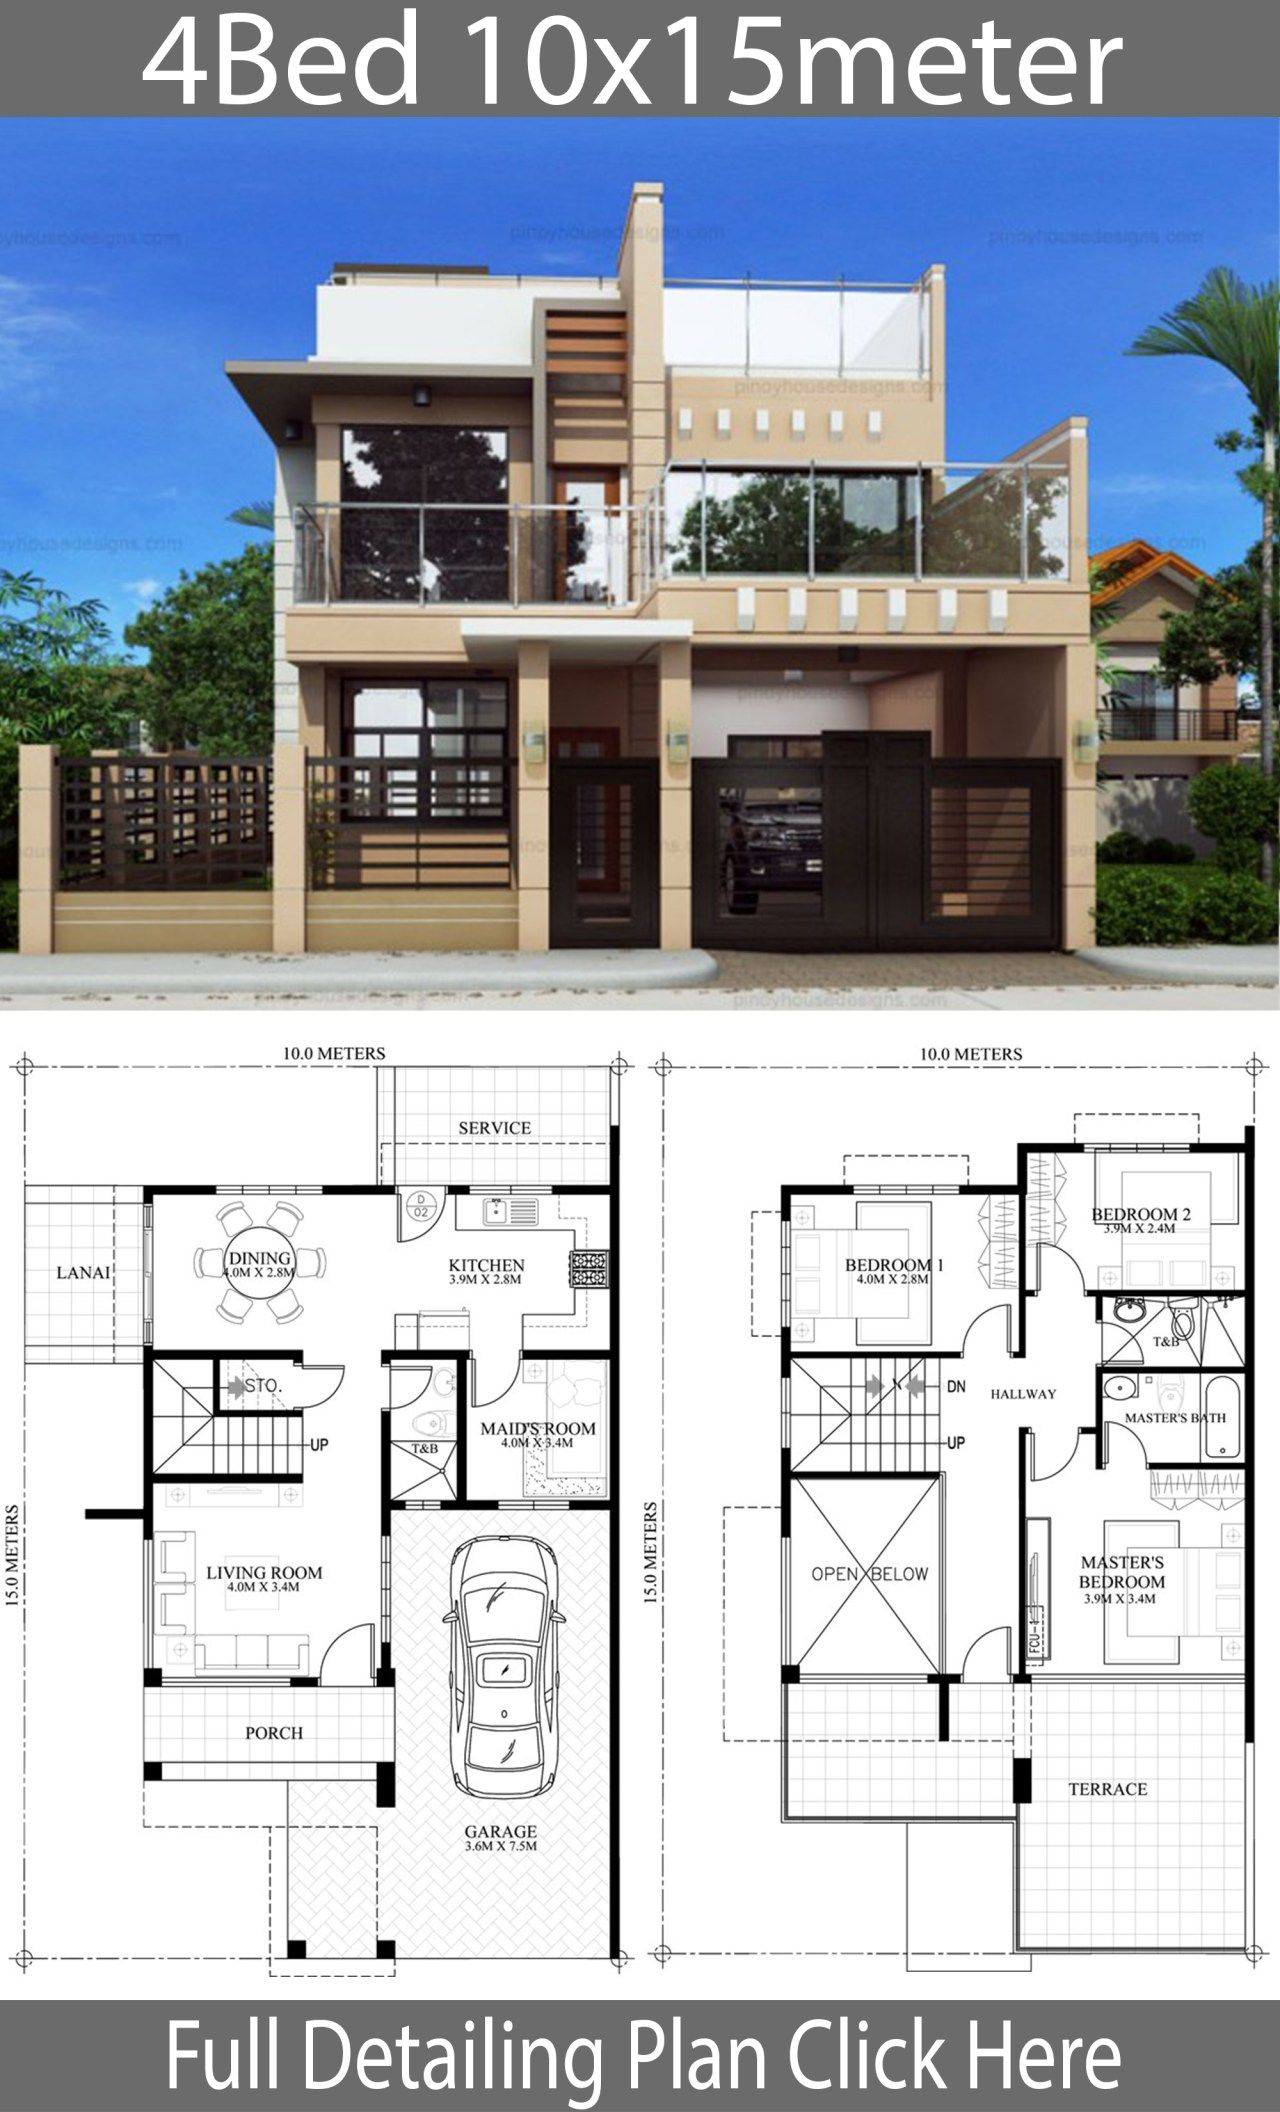 Home Design Plan 10x15m With 4 Bedrooms House Blueprints Modern House Plans House Front Design